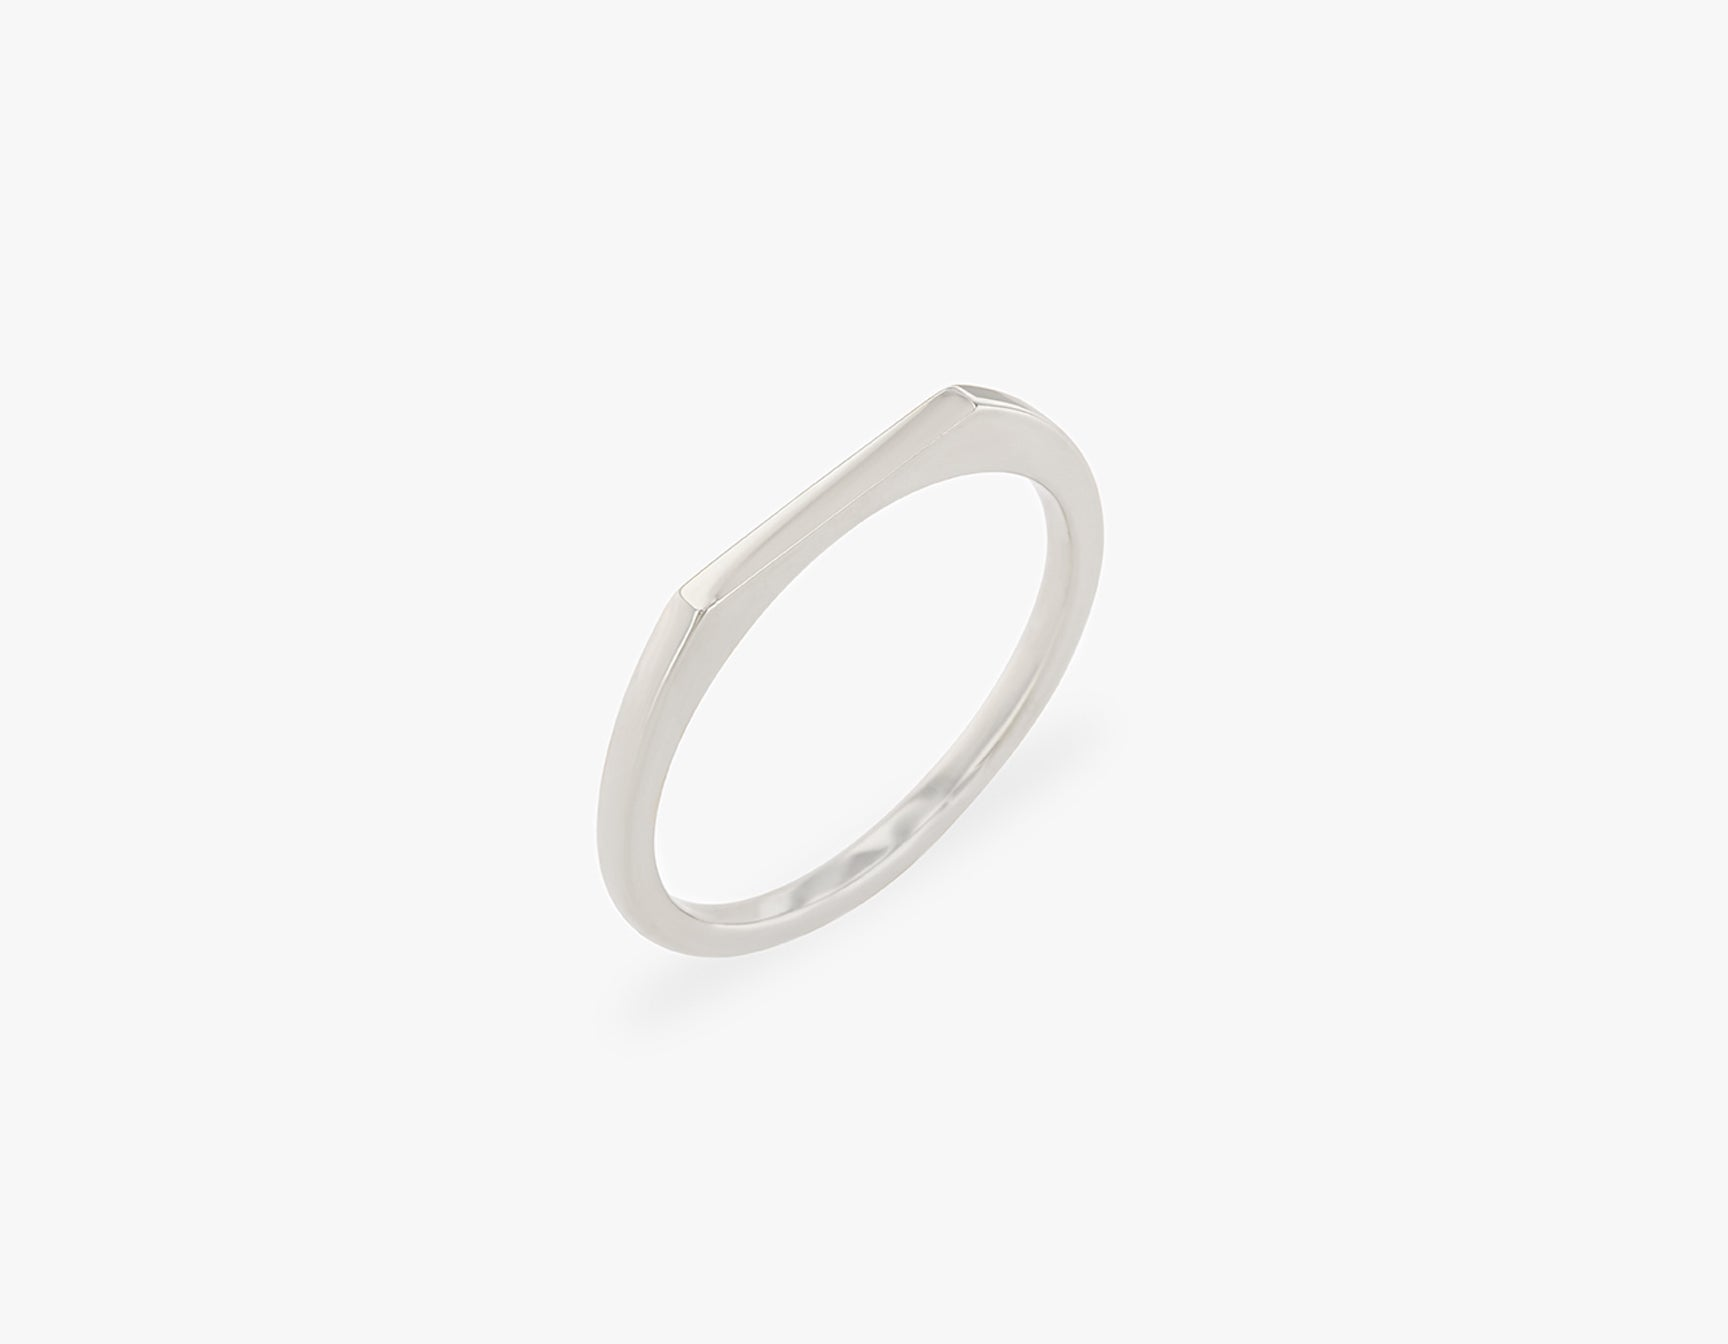 Vrai solid gold Line Ring, 14K White Gold